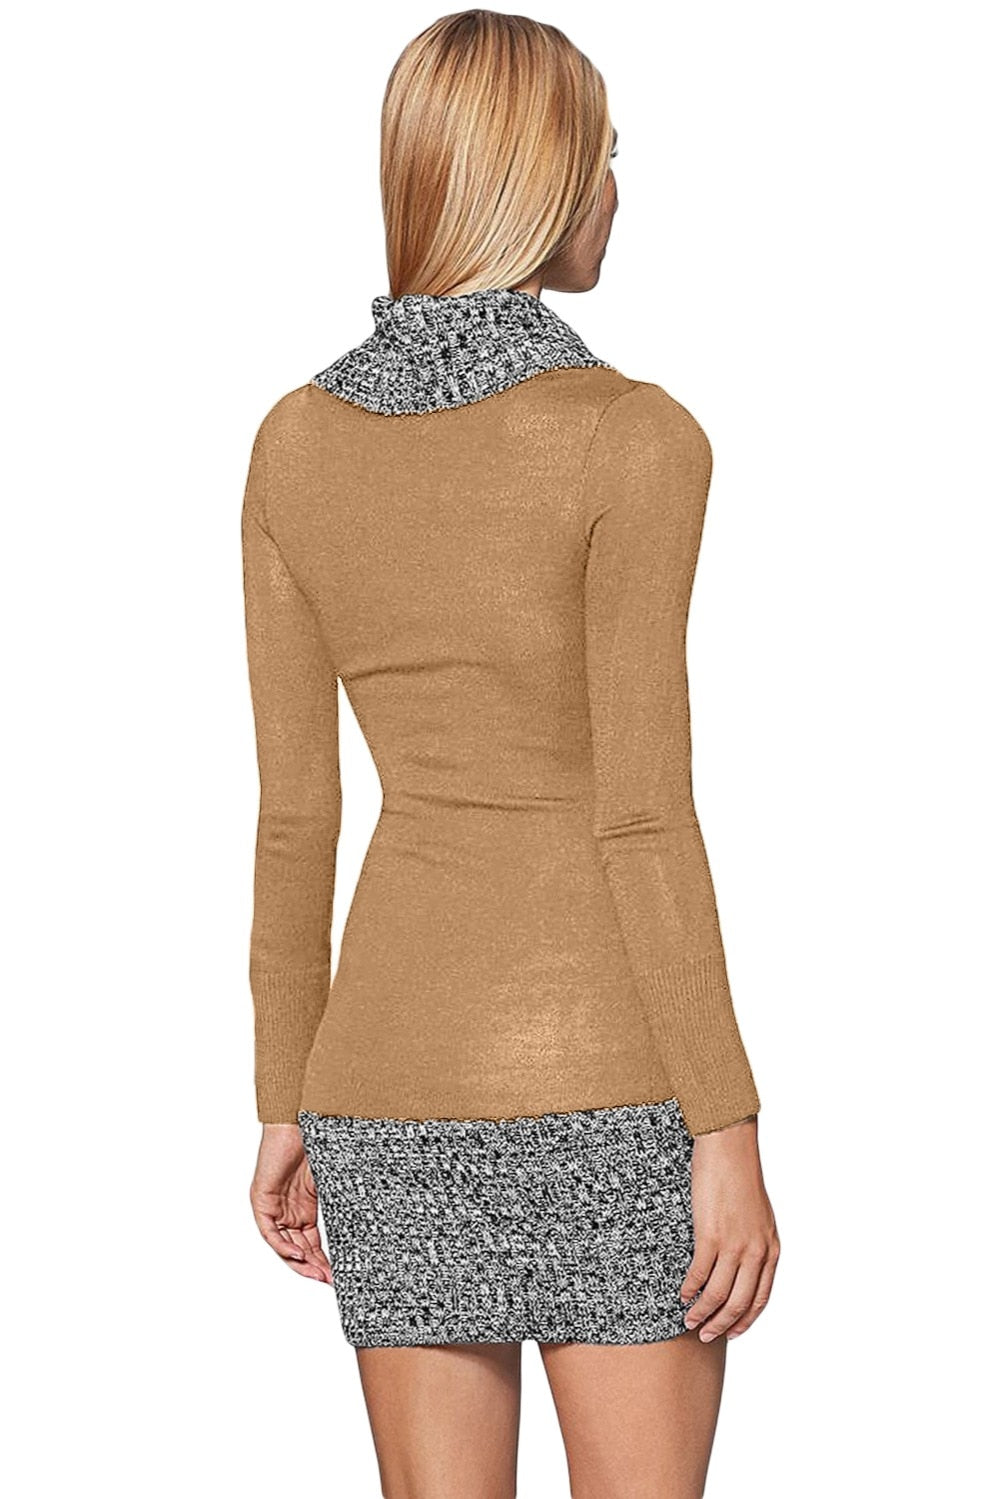 Knitted Women Autumn Winter Black Gray Button Front Long Sleeve Bow Neck Sweater Mini Dress